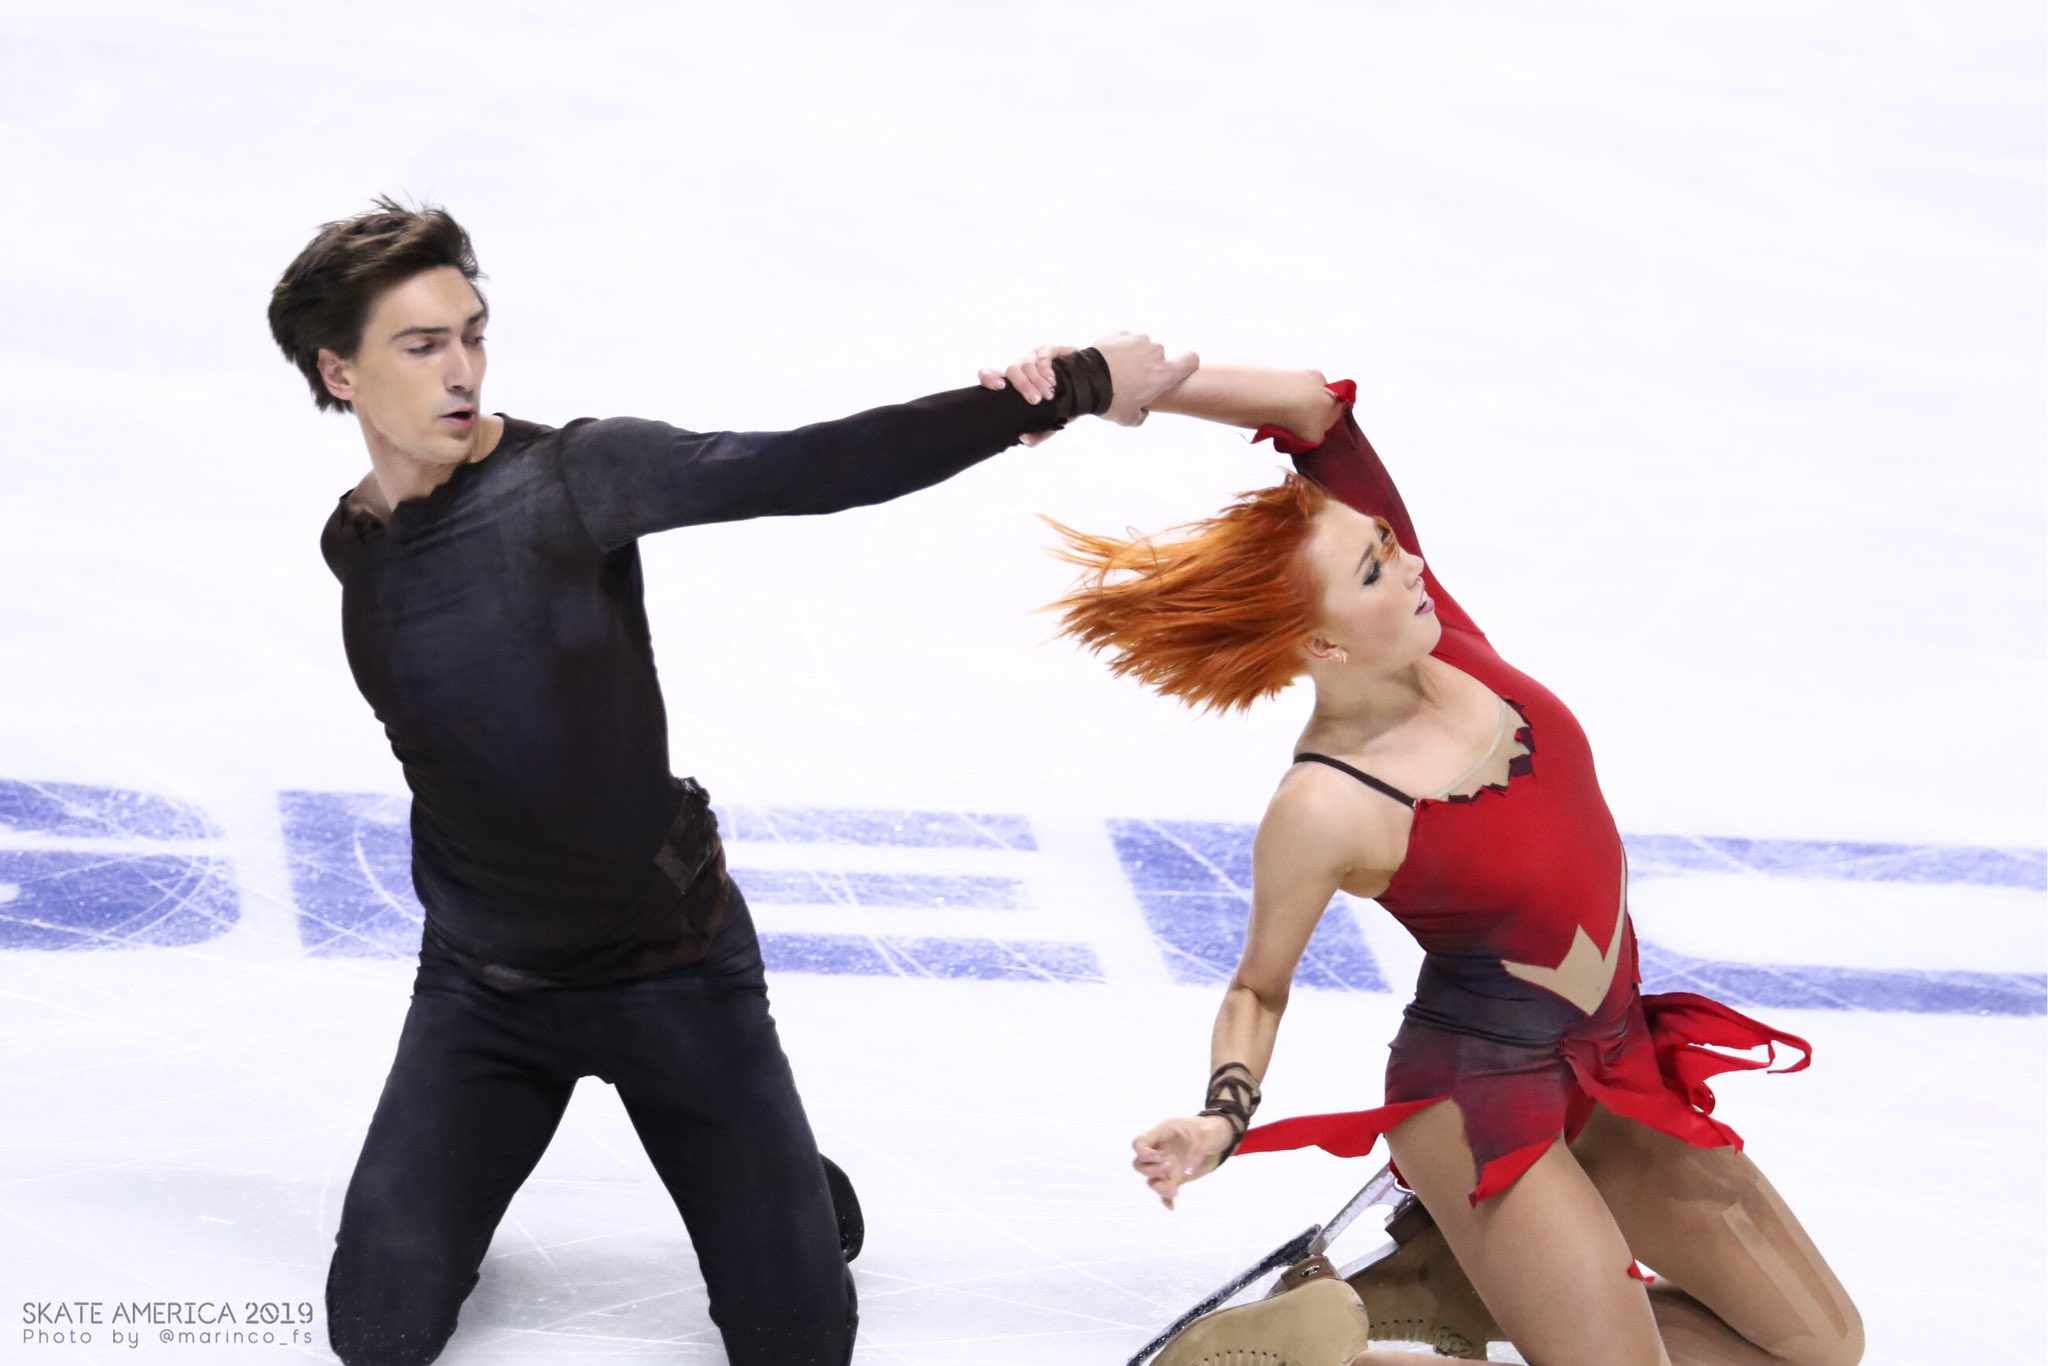 GP - 1 этап. Skate America Las Vegas, NV / USA October 18-20, 2019   - Страница 5 EHJP_F3UEAI78Qp?format=jpg&name=4096x4096